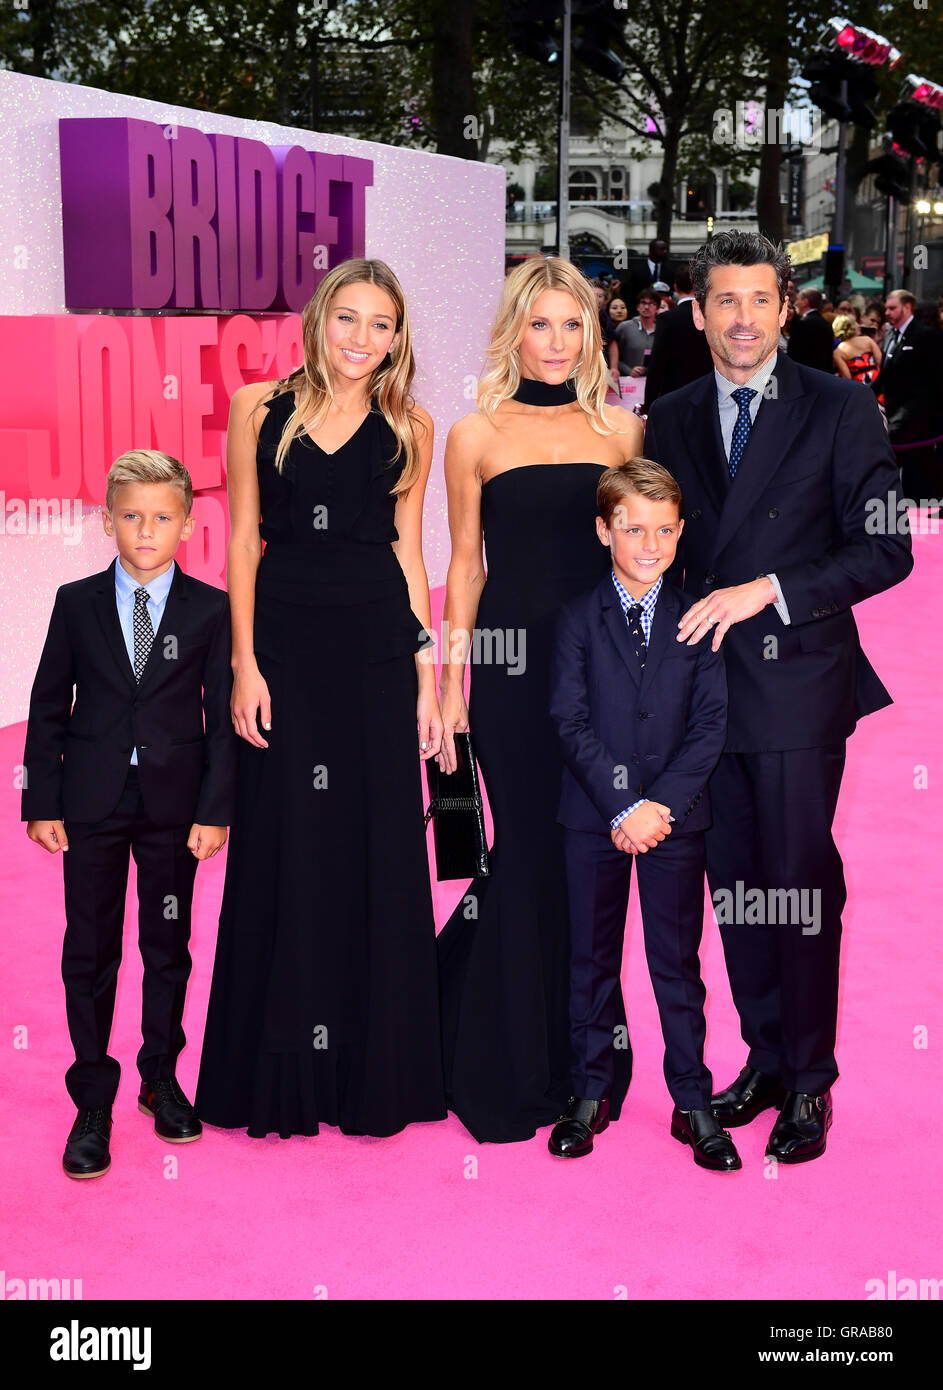 Patrick Dempsey Jillian Fink And Family Attending The World